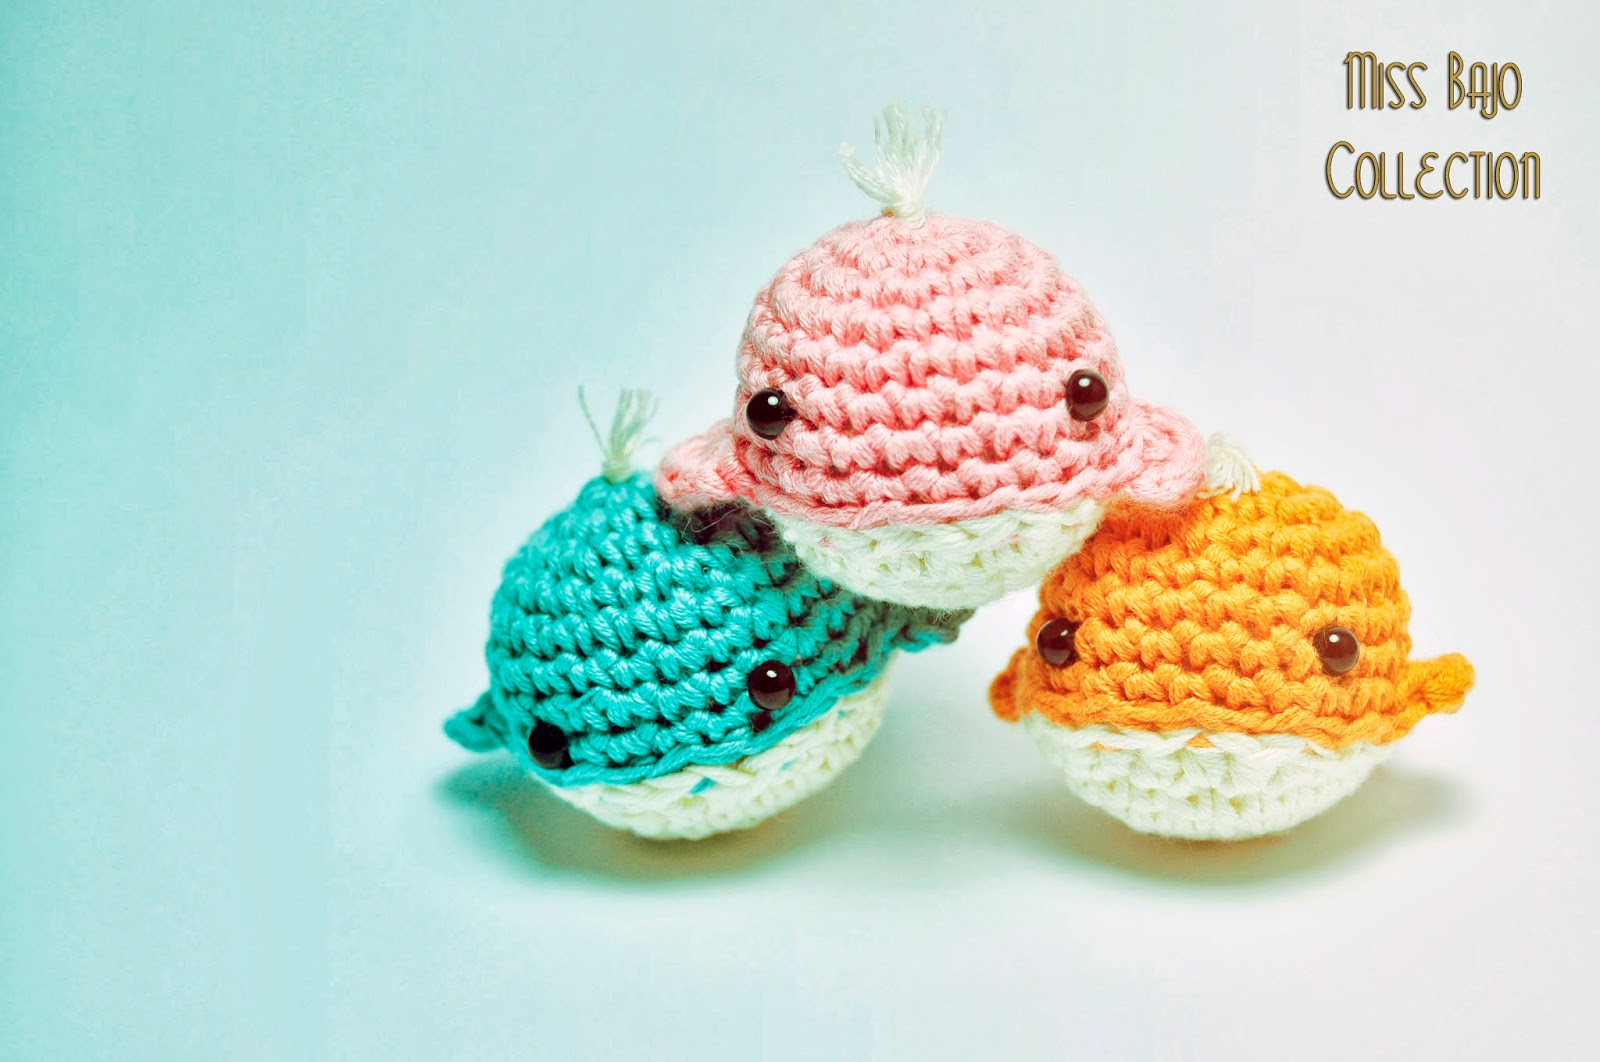 Ballena de amigurumi Miss Bajo Collection